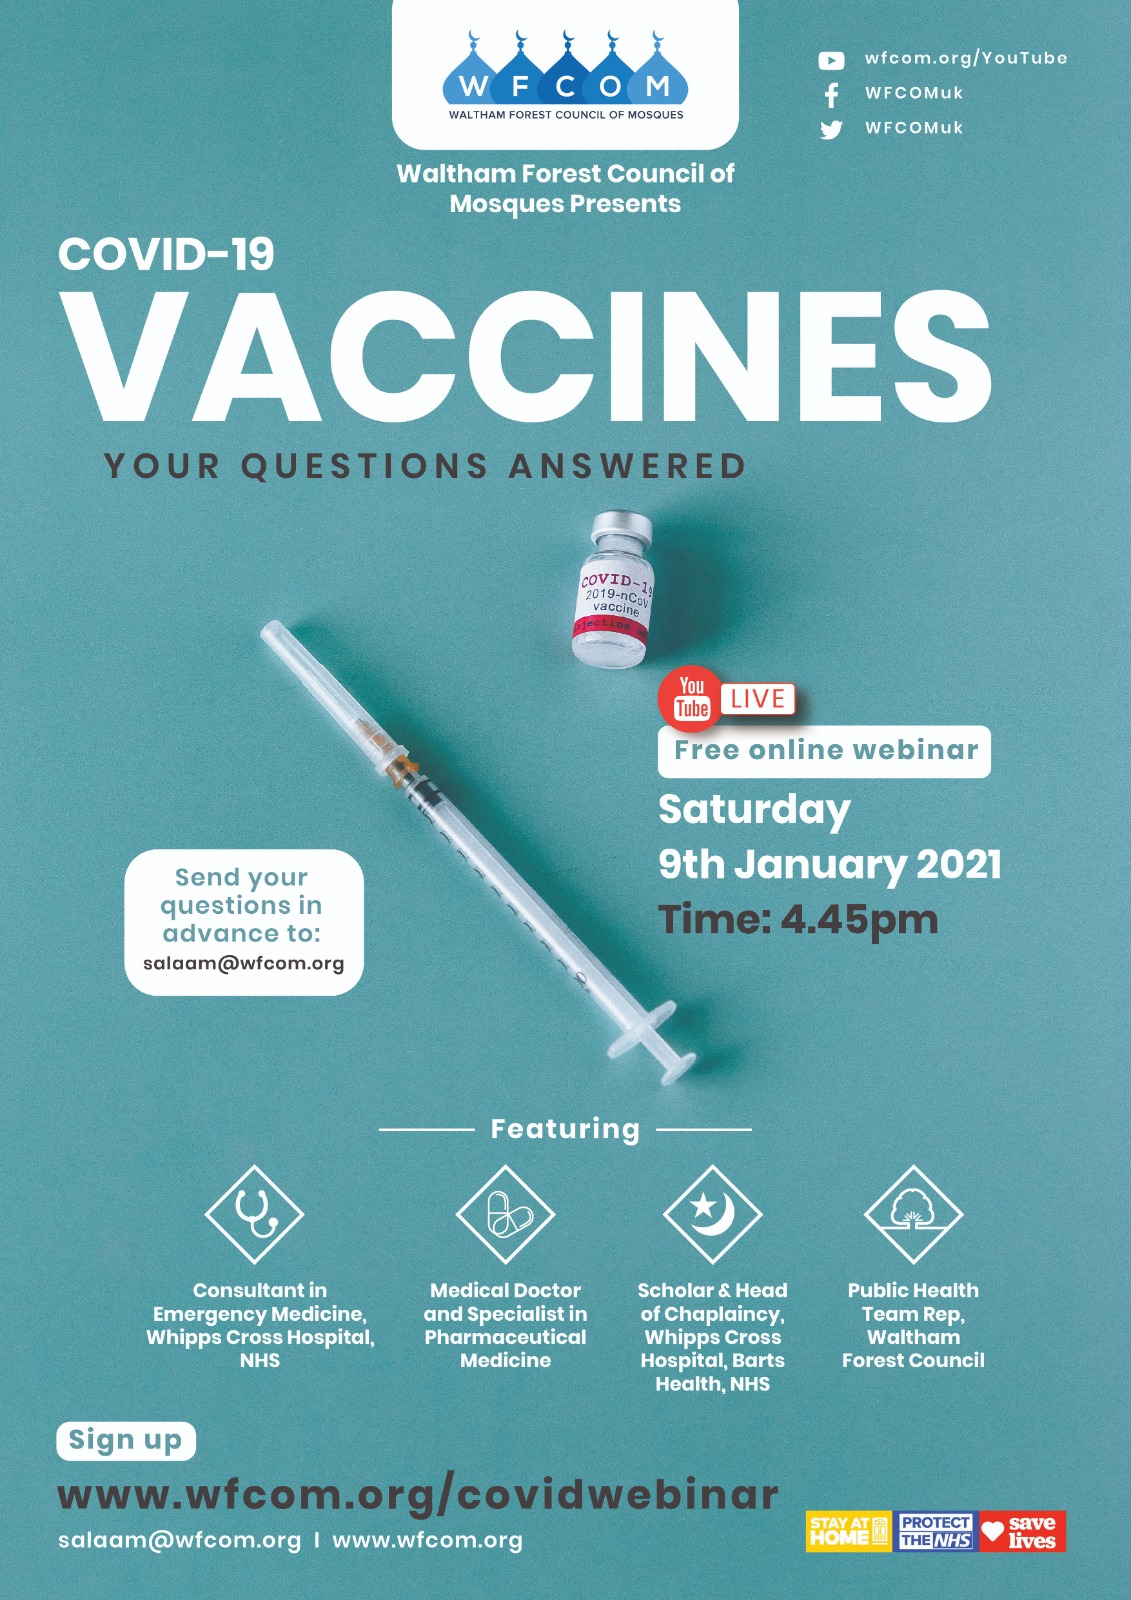 WFCOM Covid-19 Vaccine Webinar Video Replay